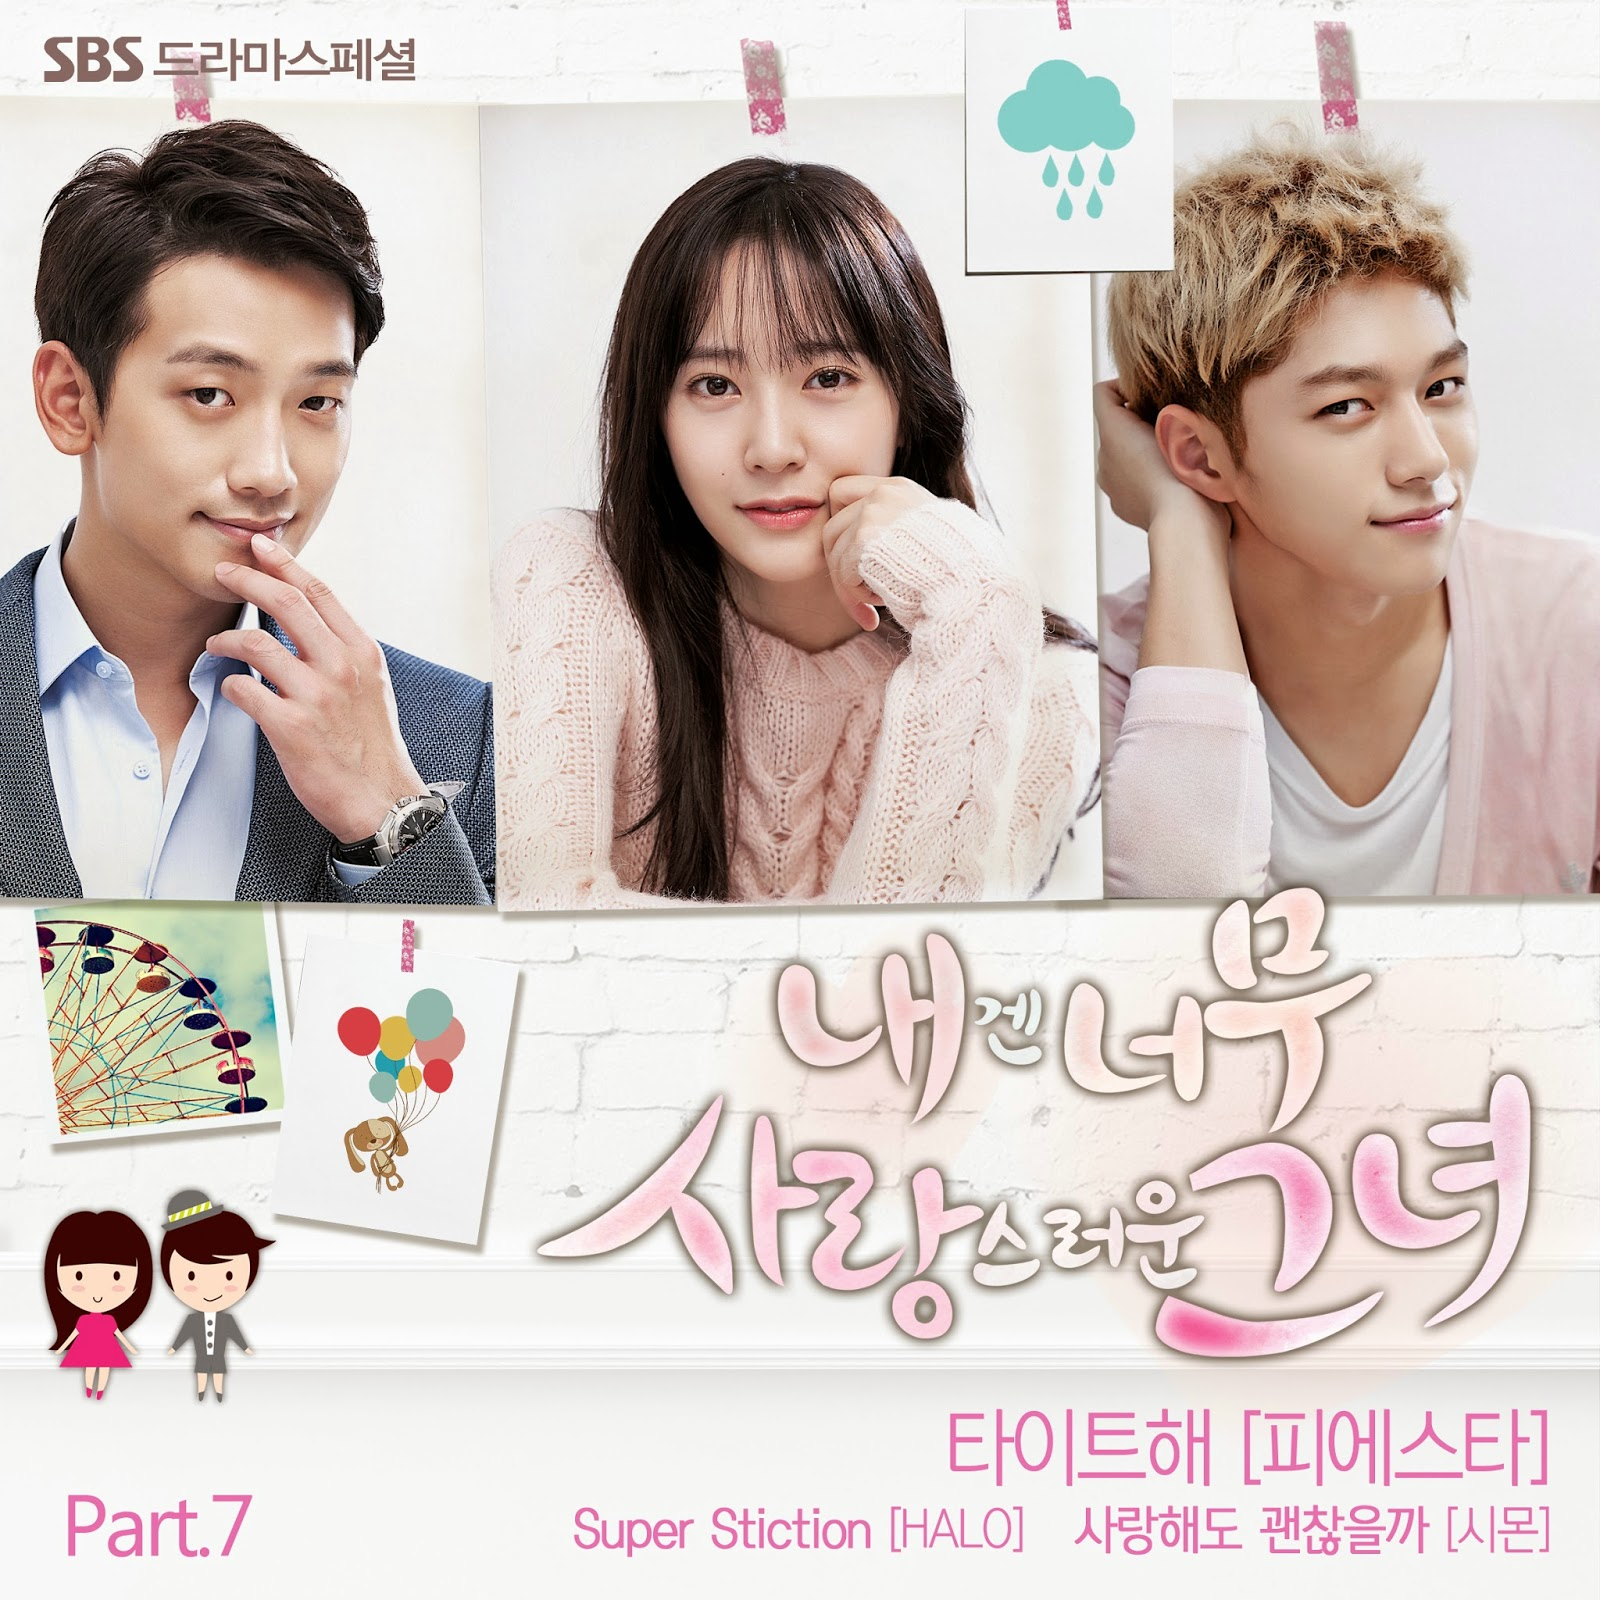 Fiestar, Halo, and Lee Simon take part in the OST for 'My Lovely Girl'